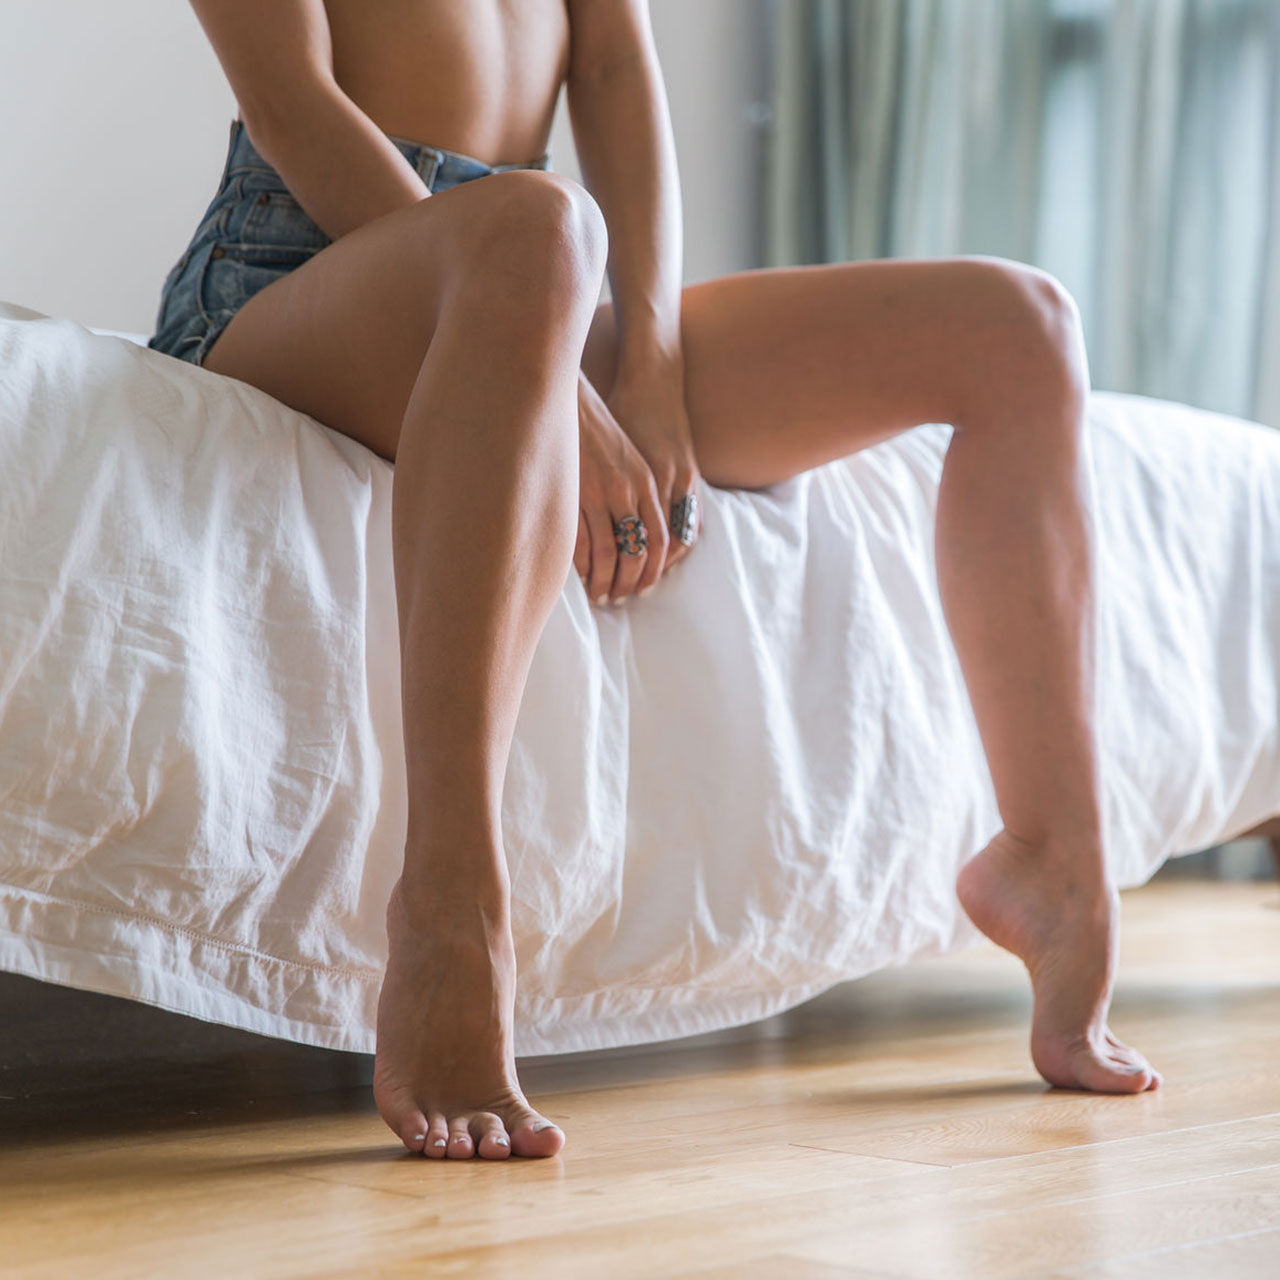 A Practical Guide to Kegels For All of Us